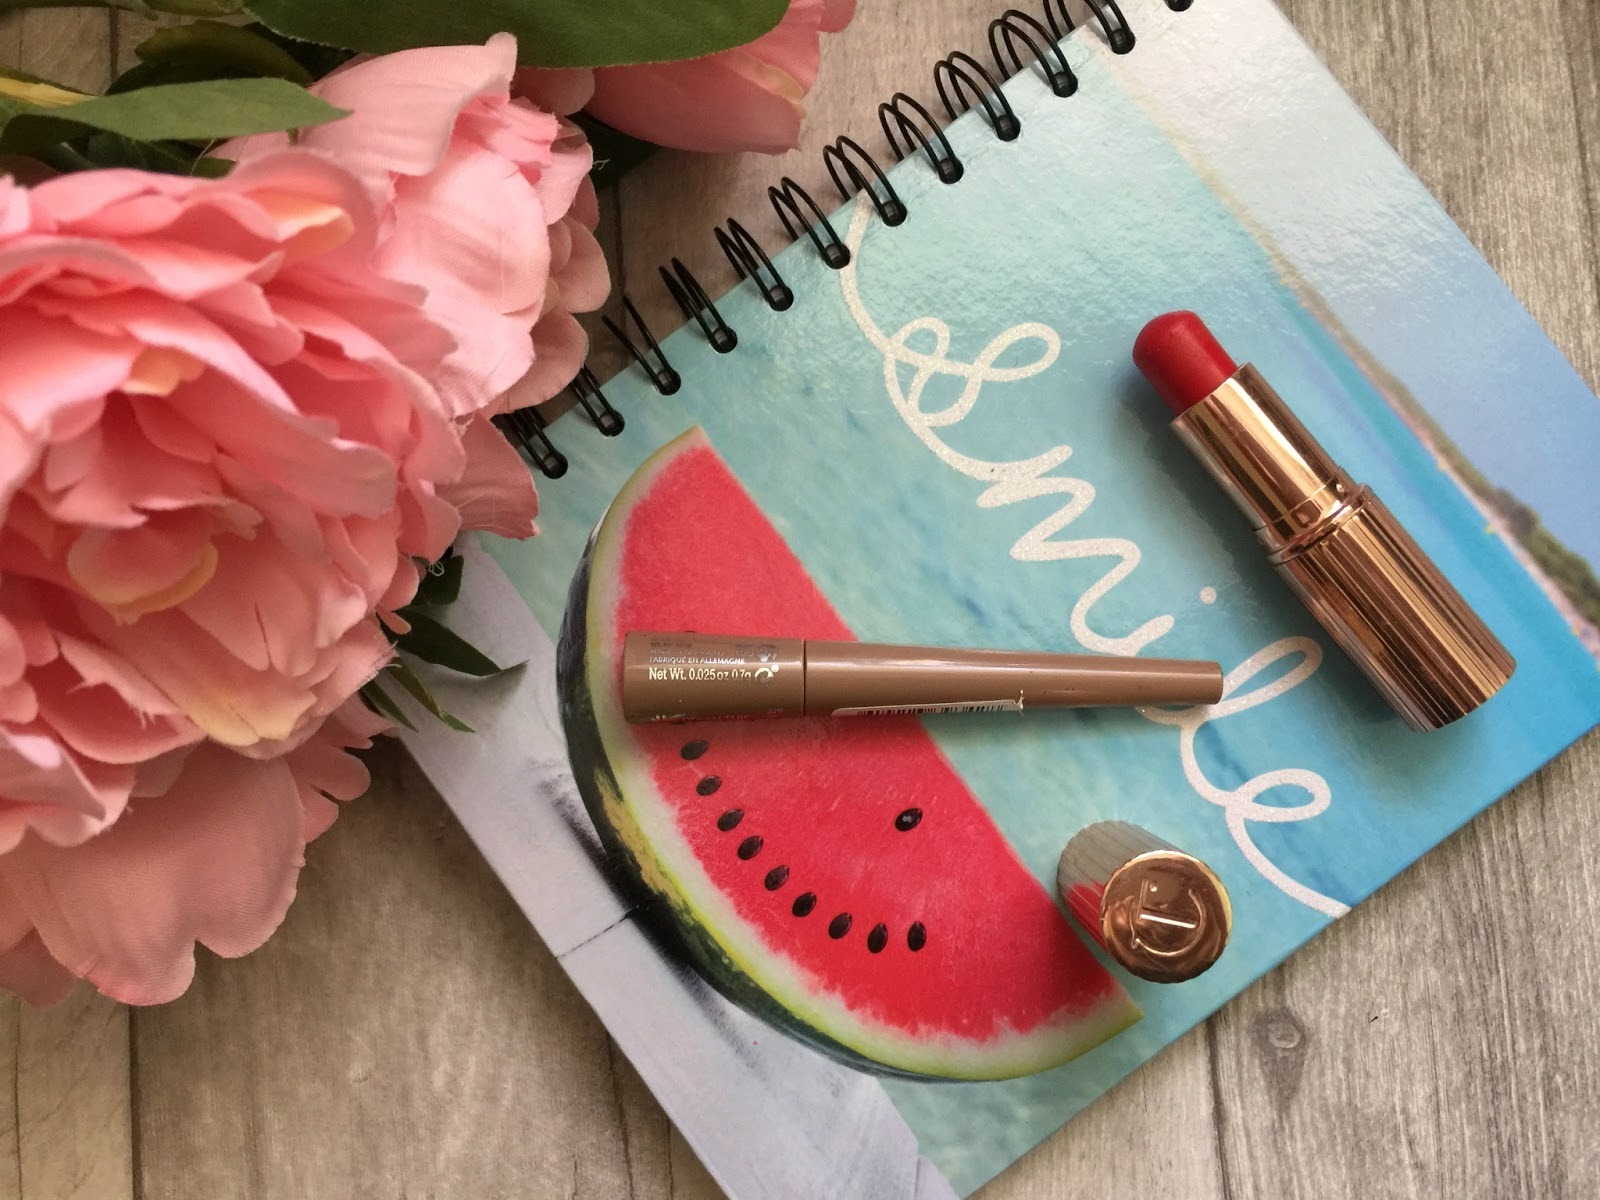 wedding face of the day charlotte tilbury lipstick and rimmel brow shaker